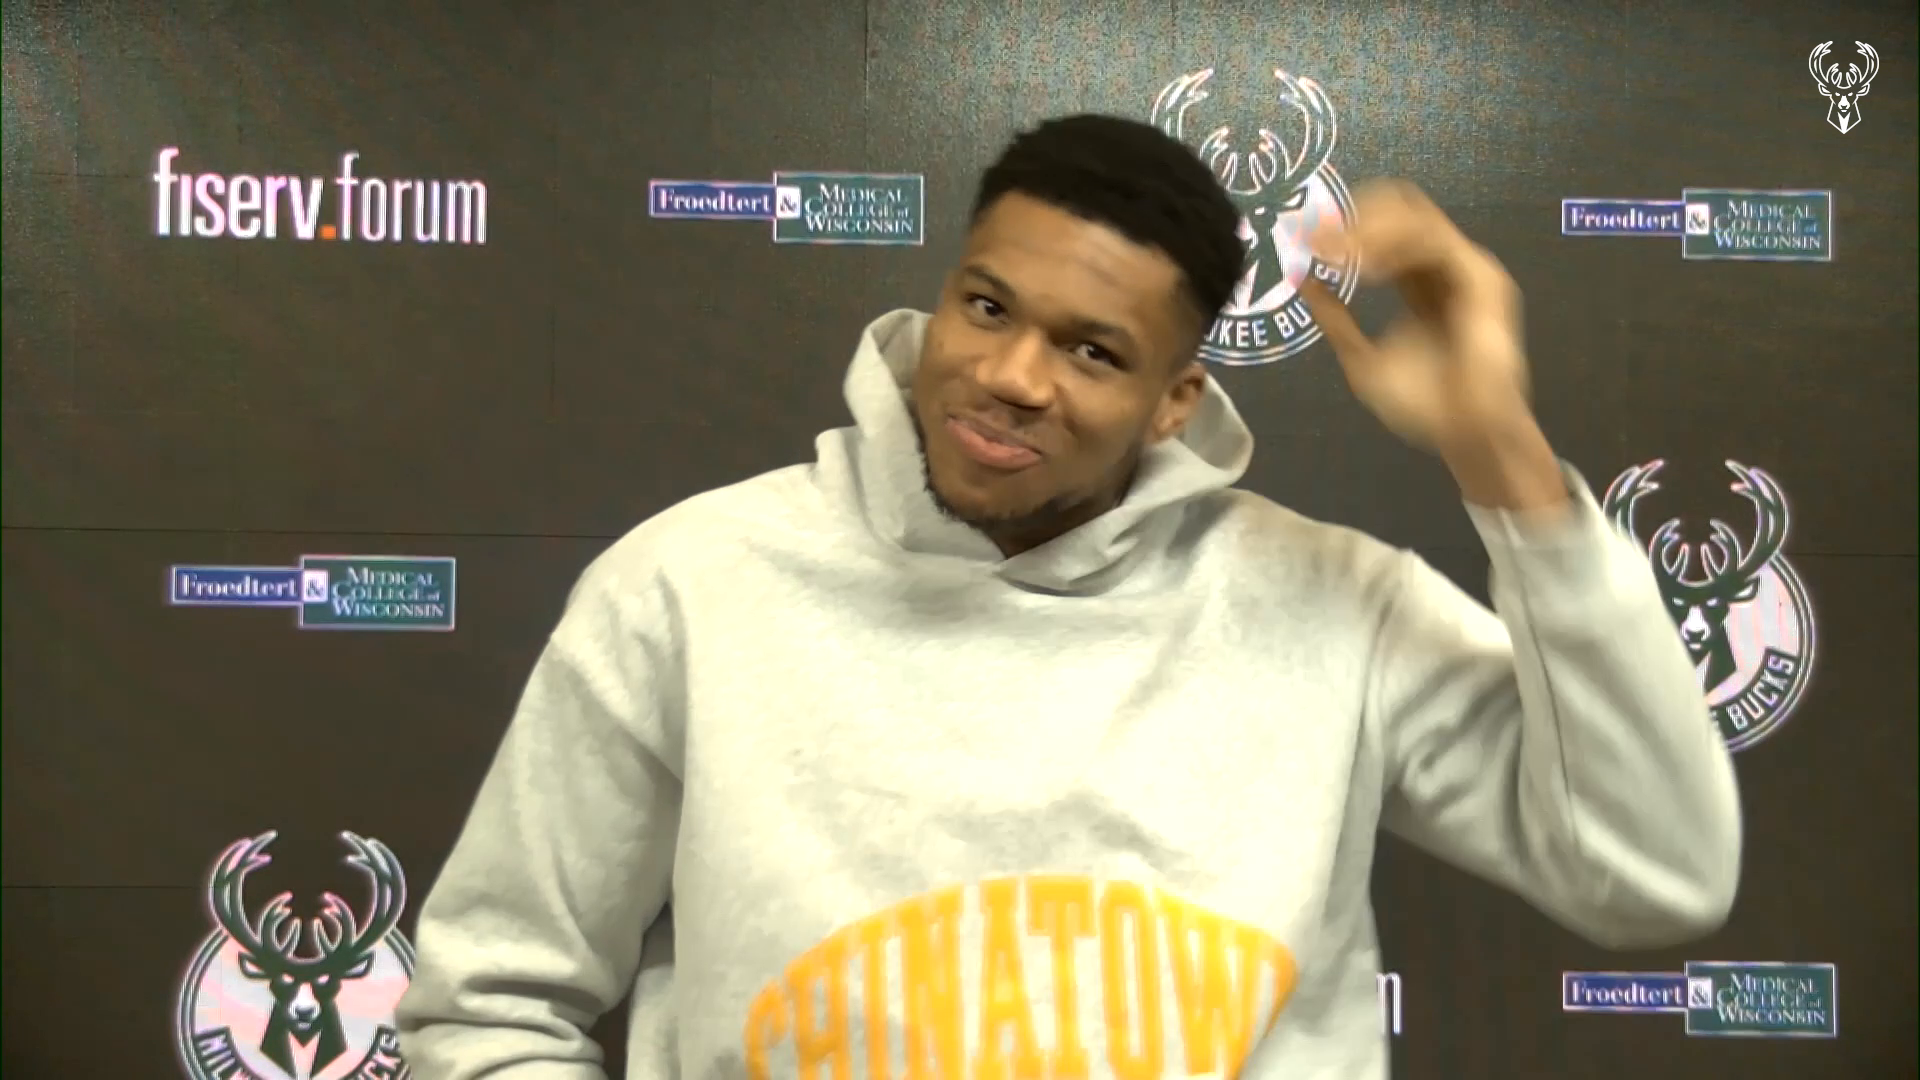 Giannis Antetokounmpo Press Conference | 2.23.21